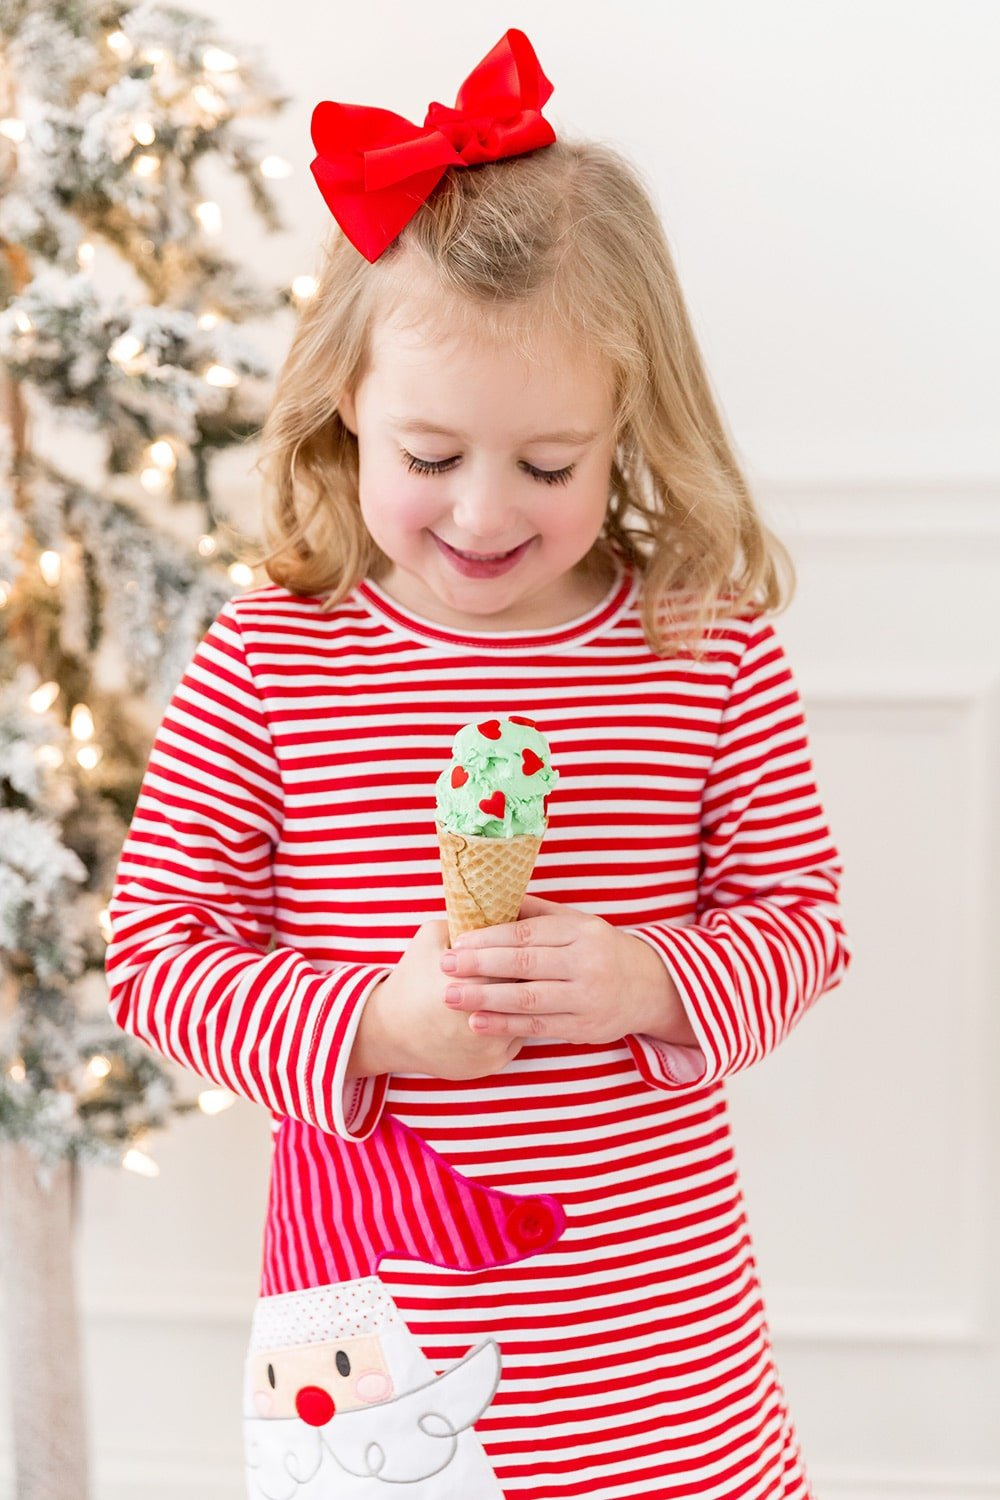 Grinch Ice Cream